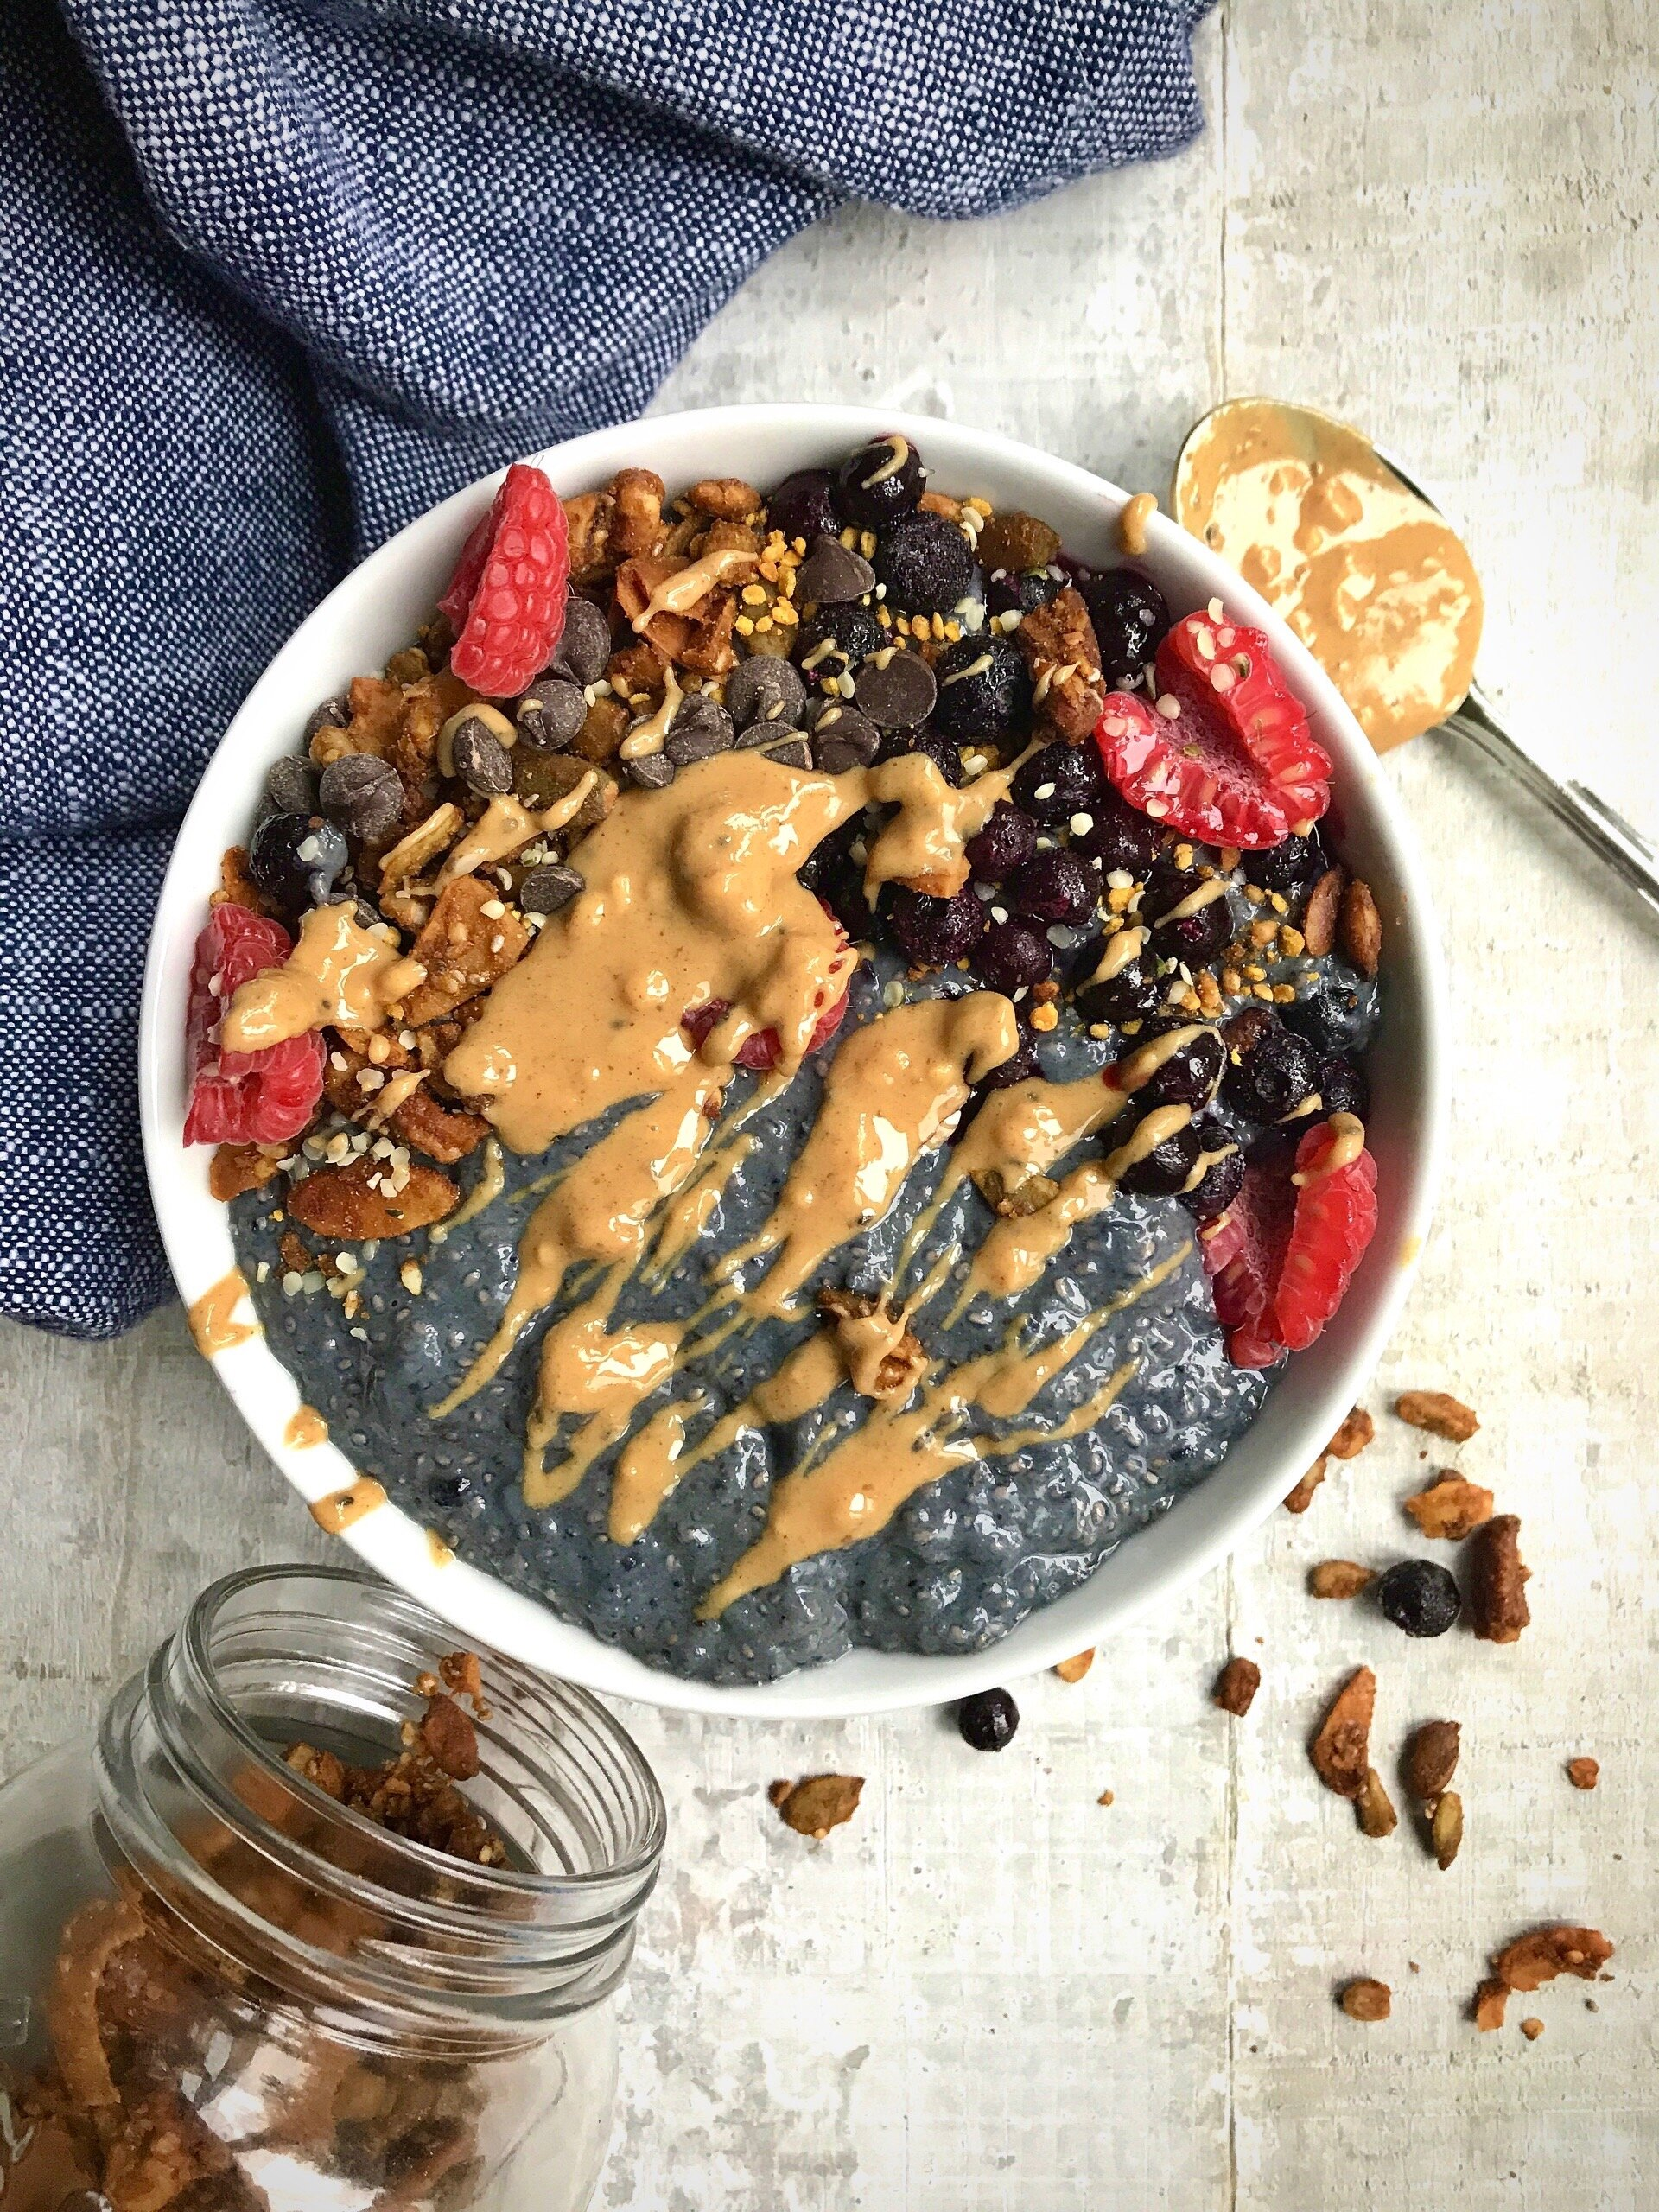 Boosted paleo almond version topped with frozen blueberries, homemade  Paleo Pumpkin Spice Granola , raspberries, sugar-free chocolate chips, hemp hearts,  Beekeeper's Naturals  pollen, and Fatso Salted Caramel Peanut Butter (omit for paleo).